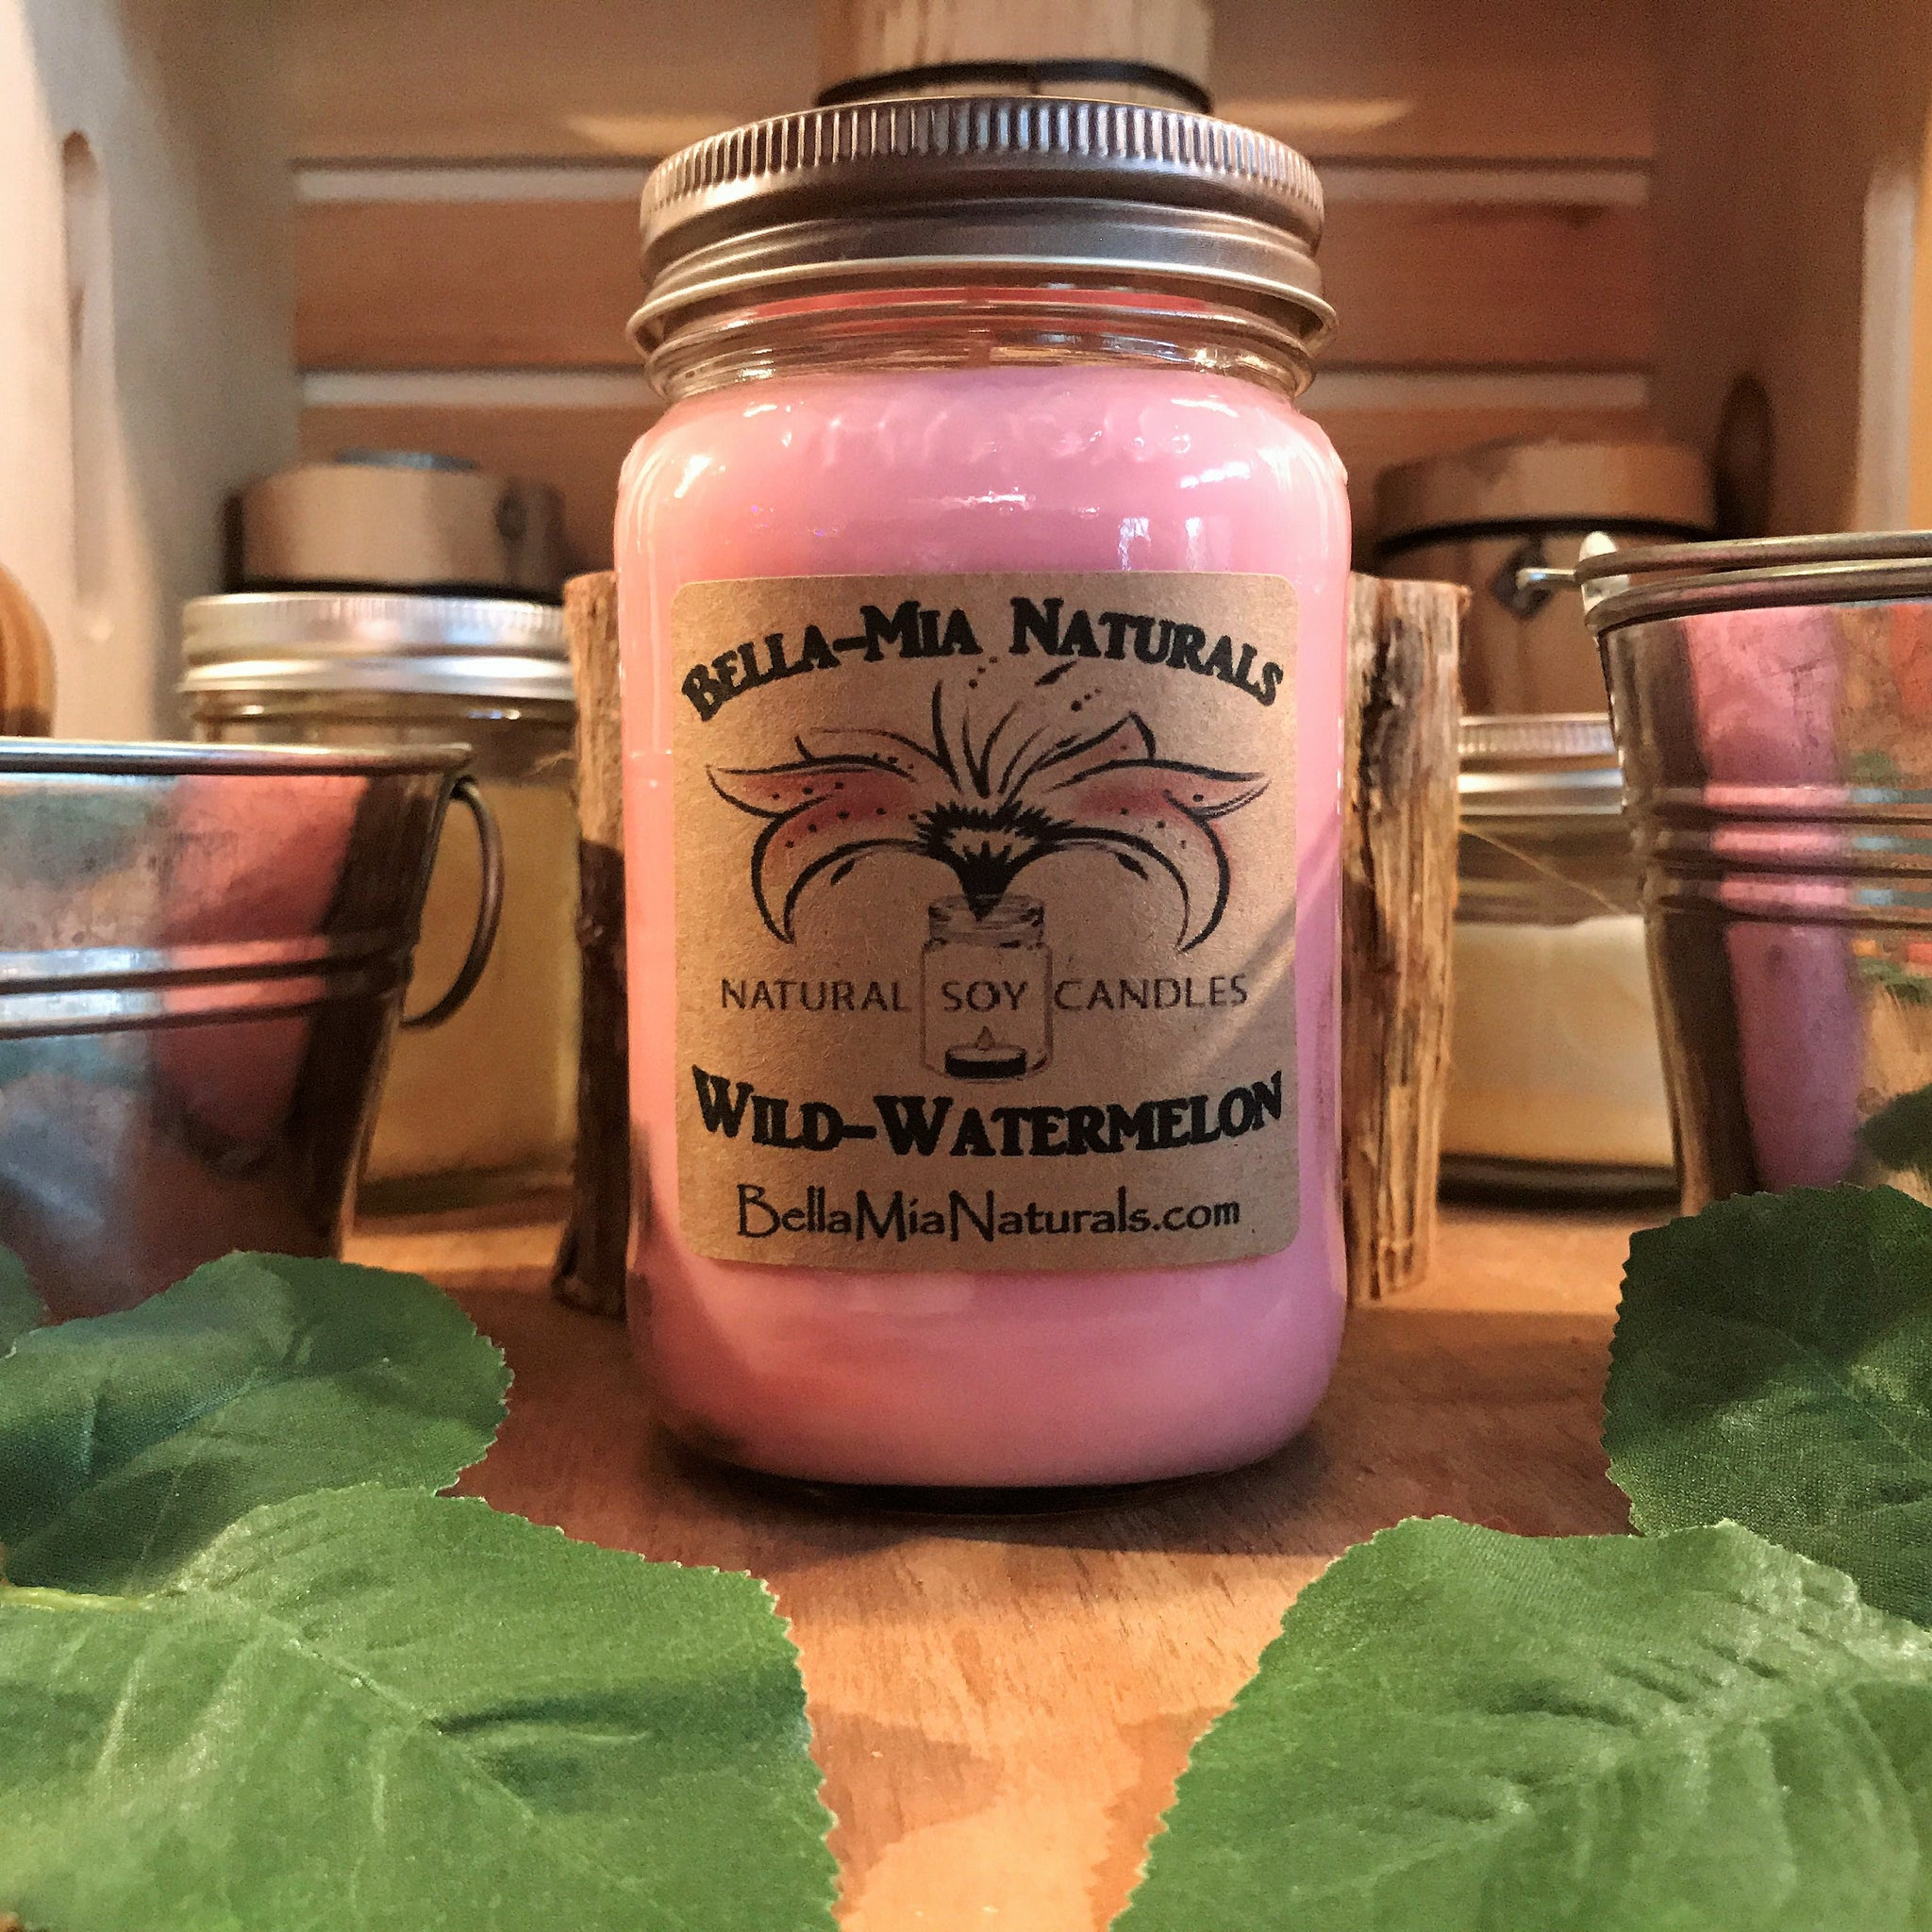 Wild-Watermelon Natural Hand Poured Soy Candles